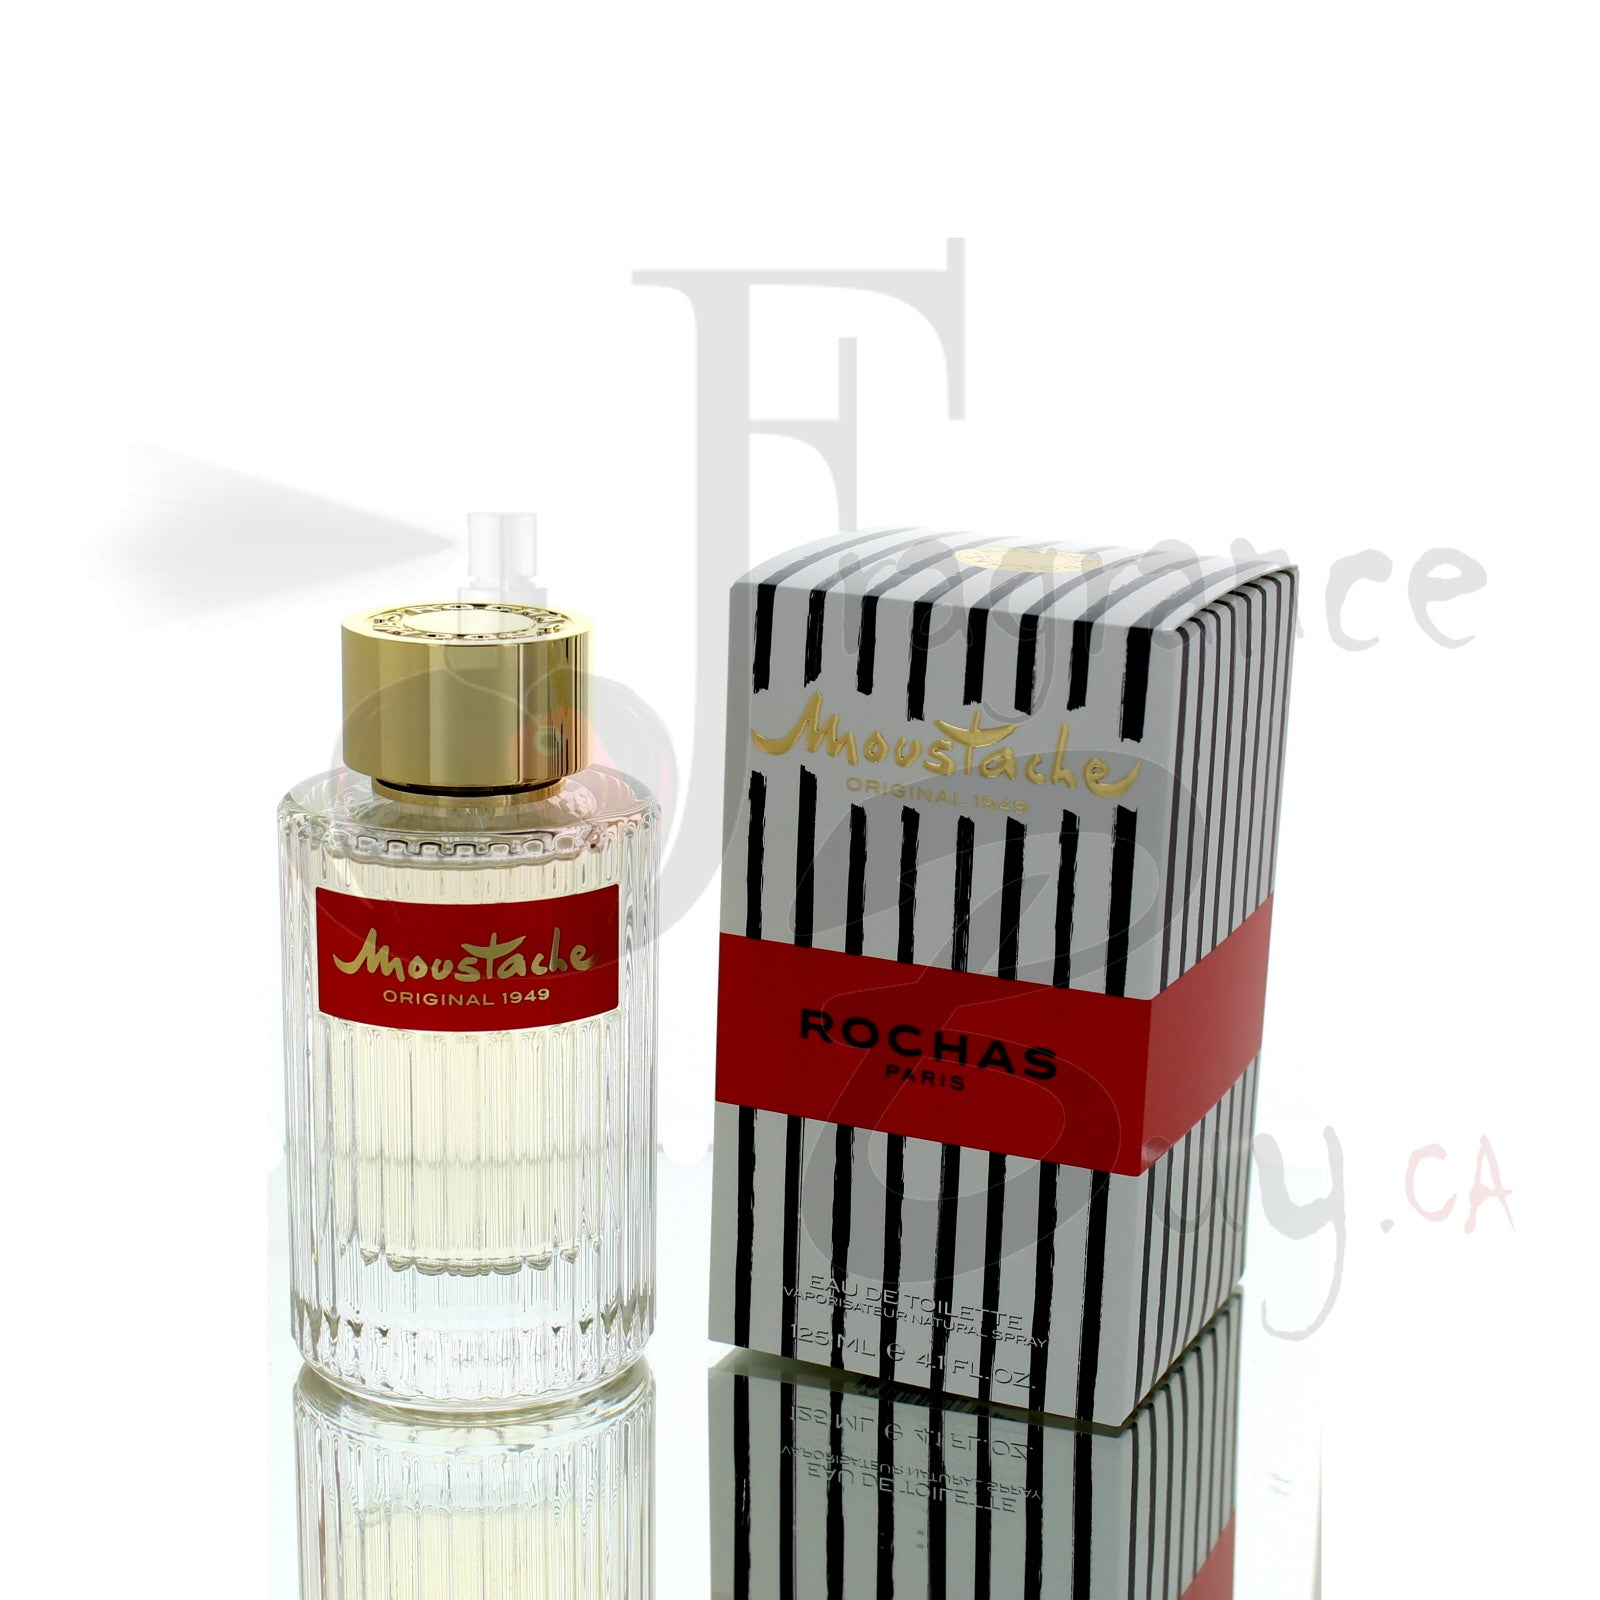 Rochas Moustache Eau de Toilette (EDT Edition) For Man